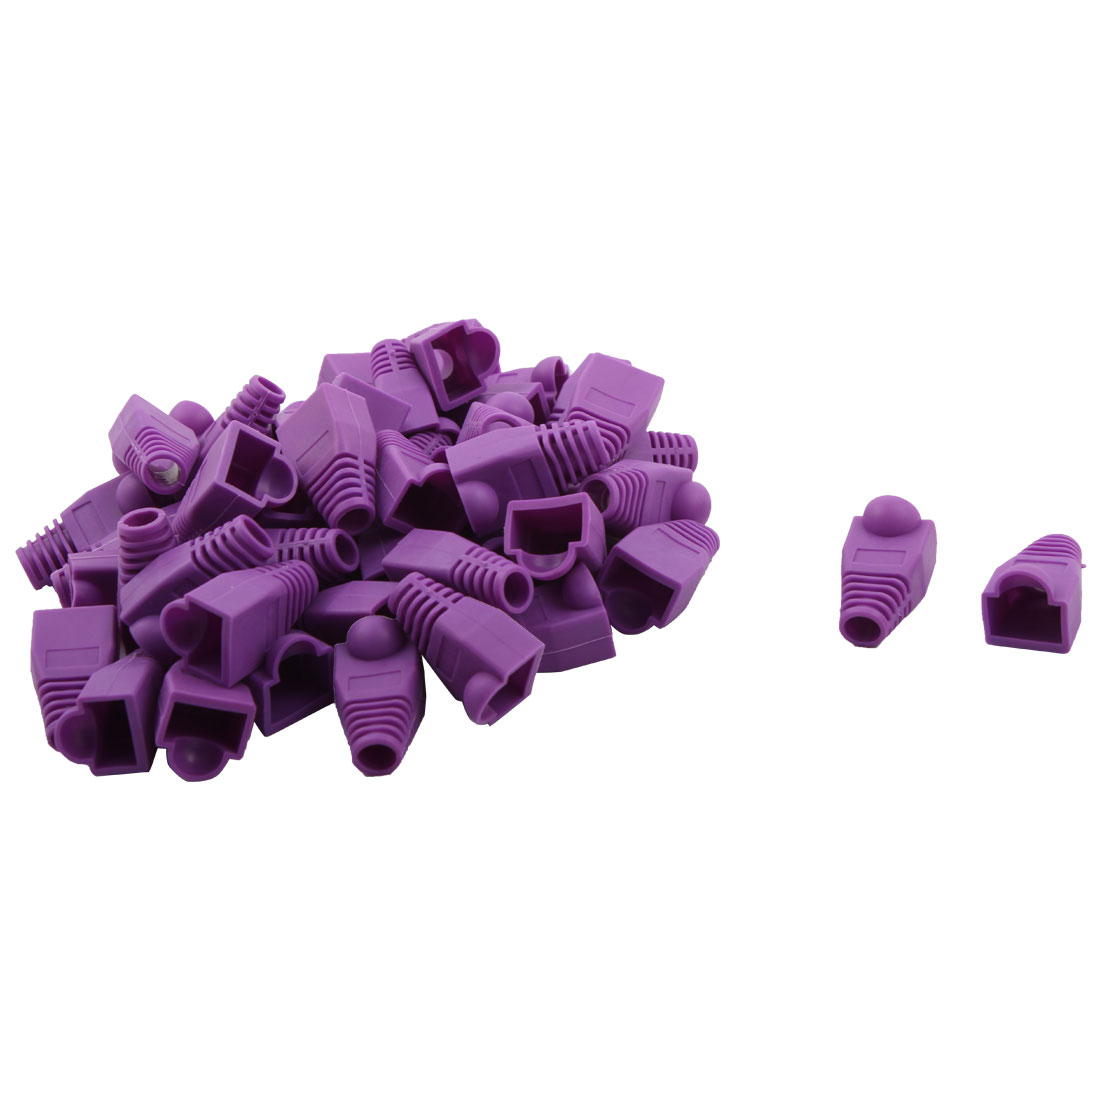 DIY Computer Plastic RJ45 Ethernet Network Cable Connector Boots Cap Cover Purple 50pcs